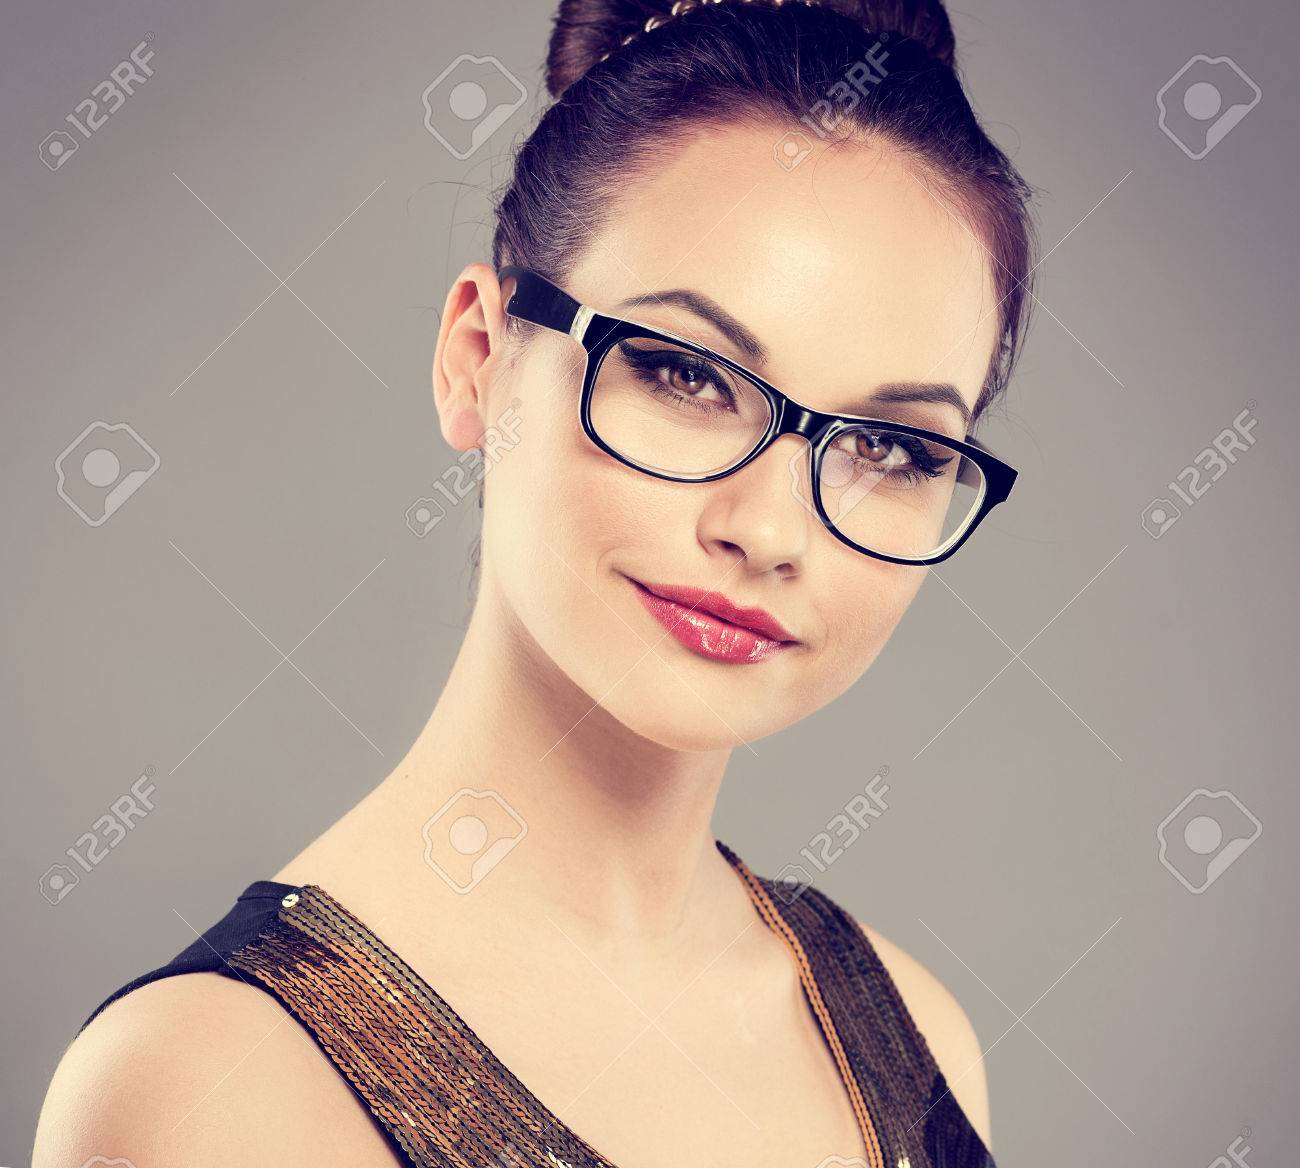 Close-up portrait of fashion glamour model wearing spectacles. Young attractive Caucasian woman posing in studio looking at camera. - 39873257